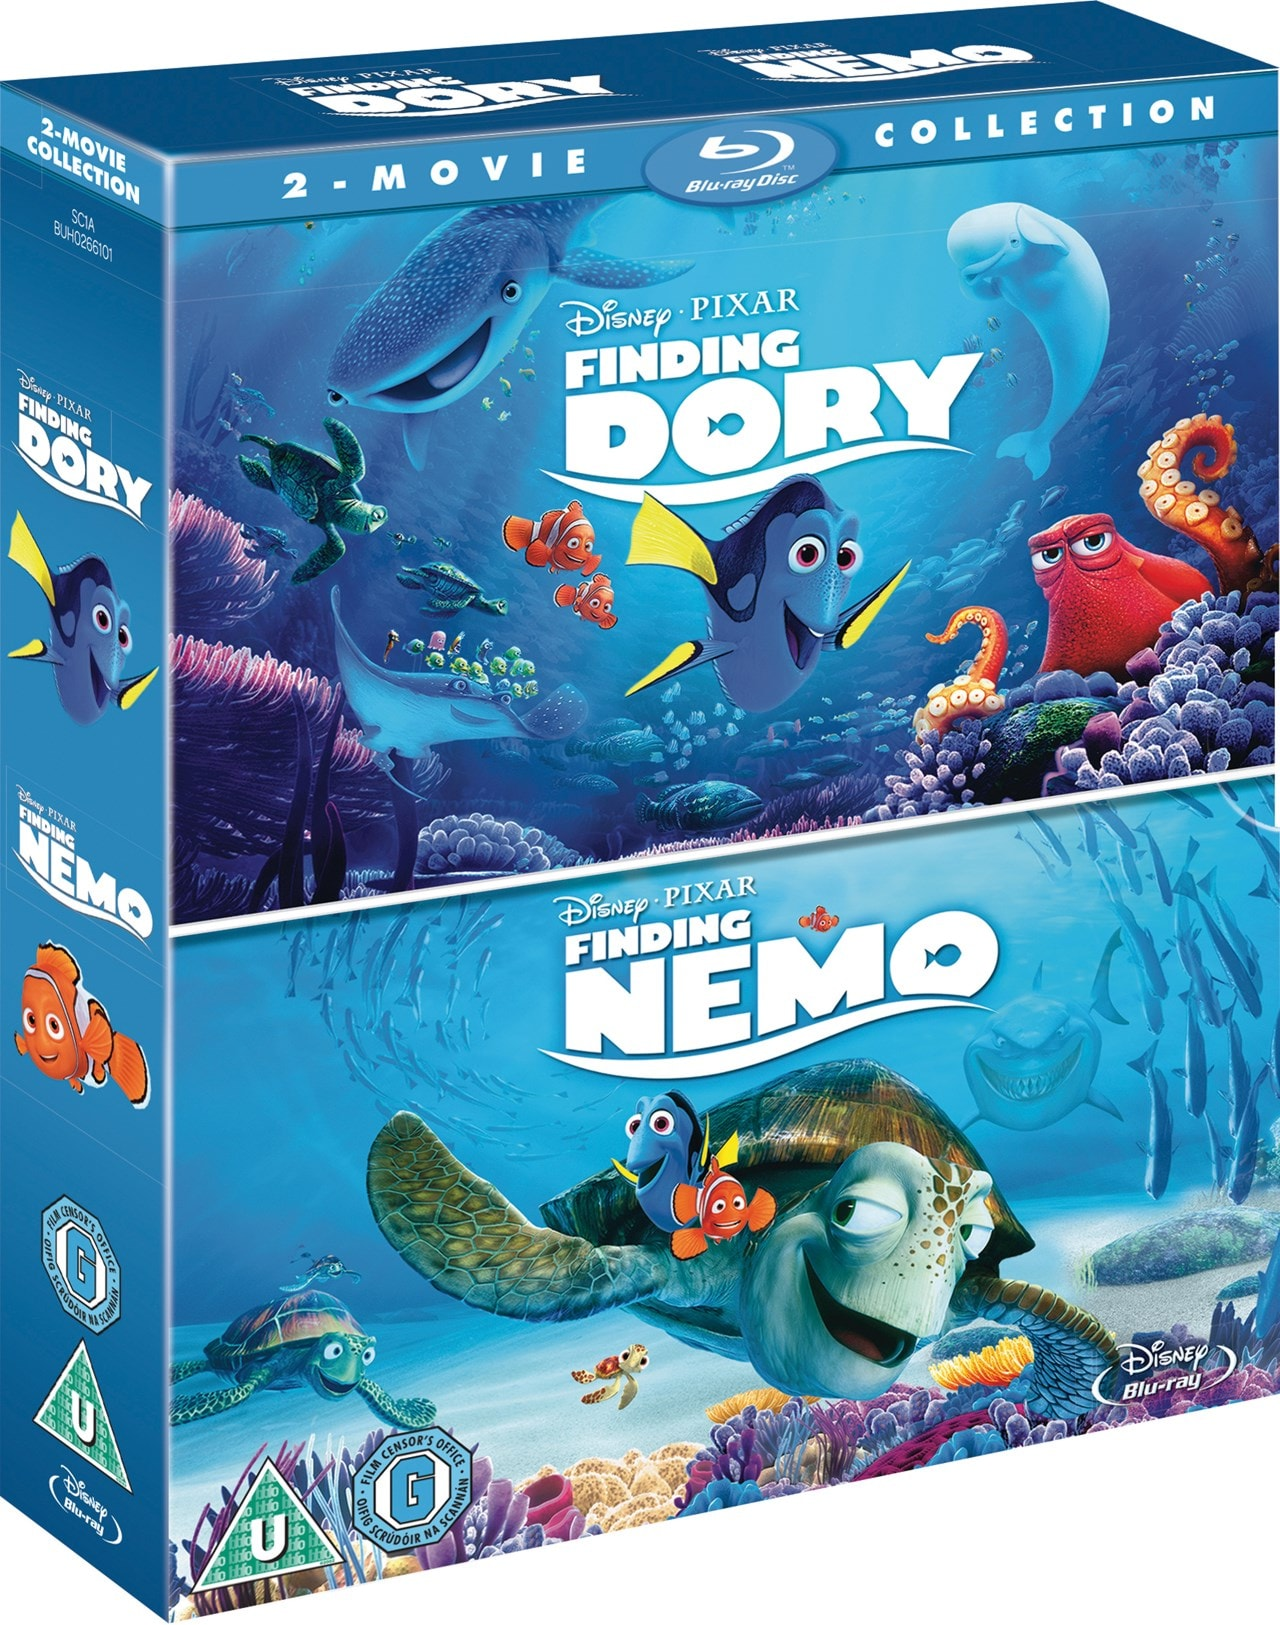 Finding Dory/Finding Nemo - 2